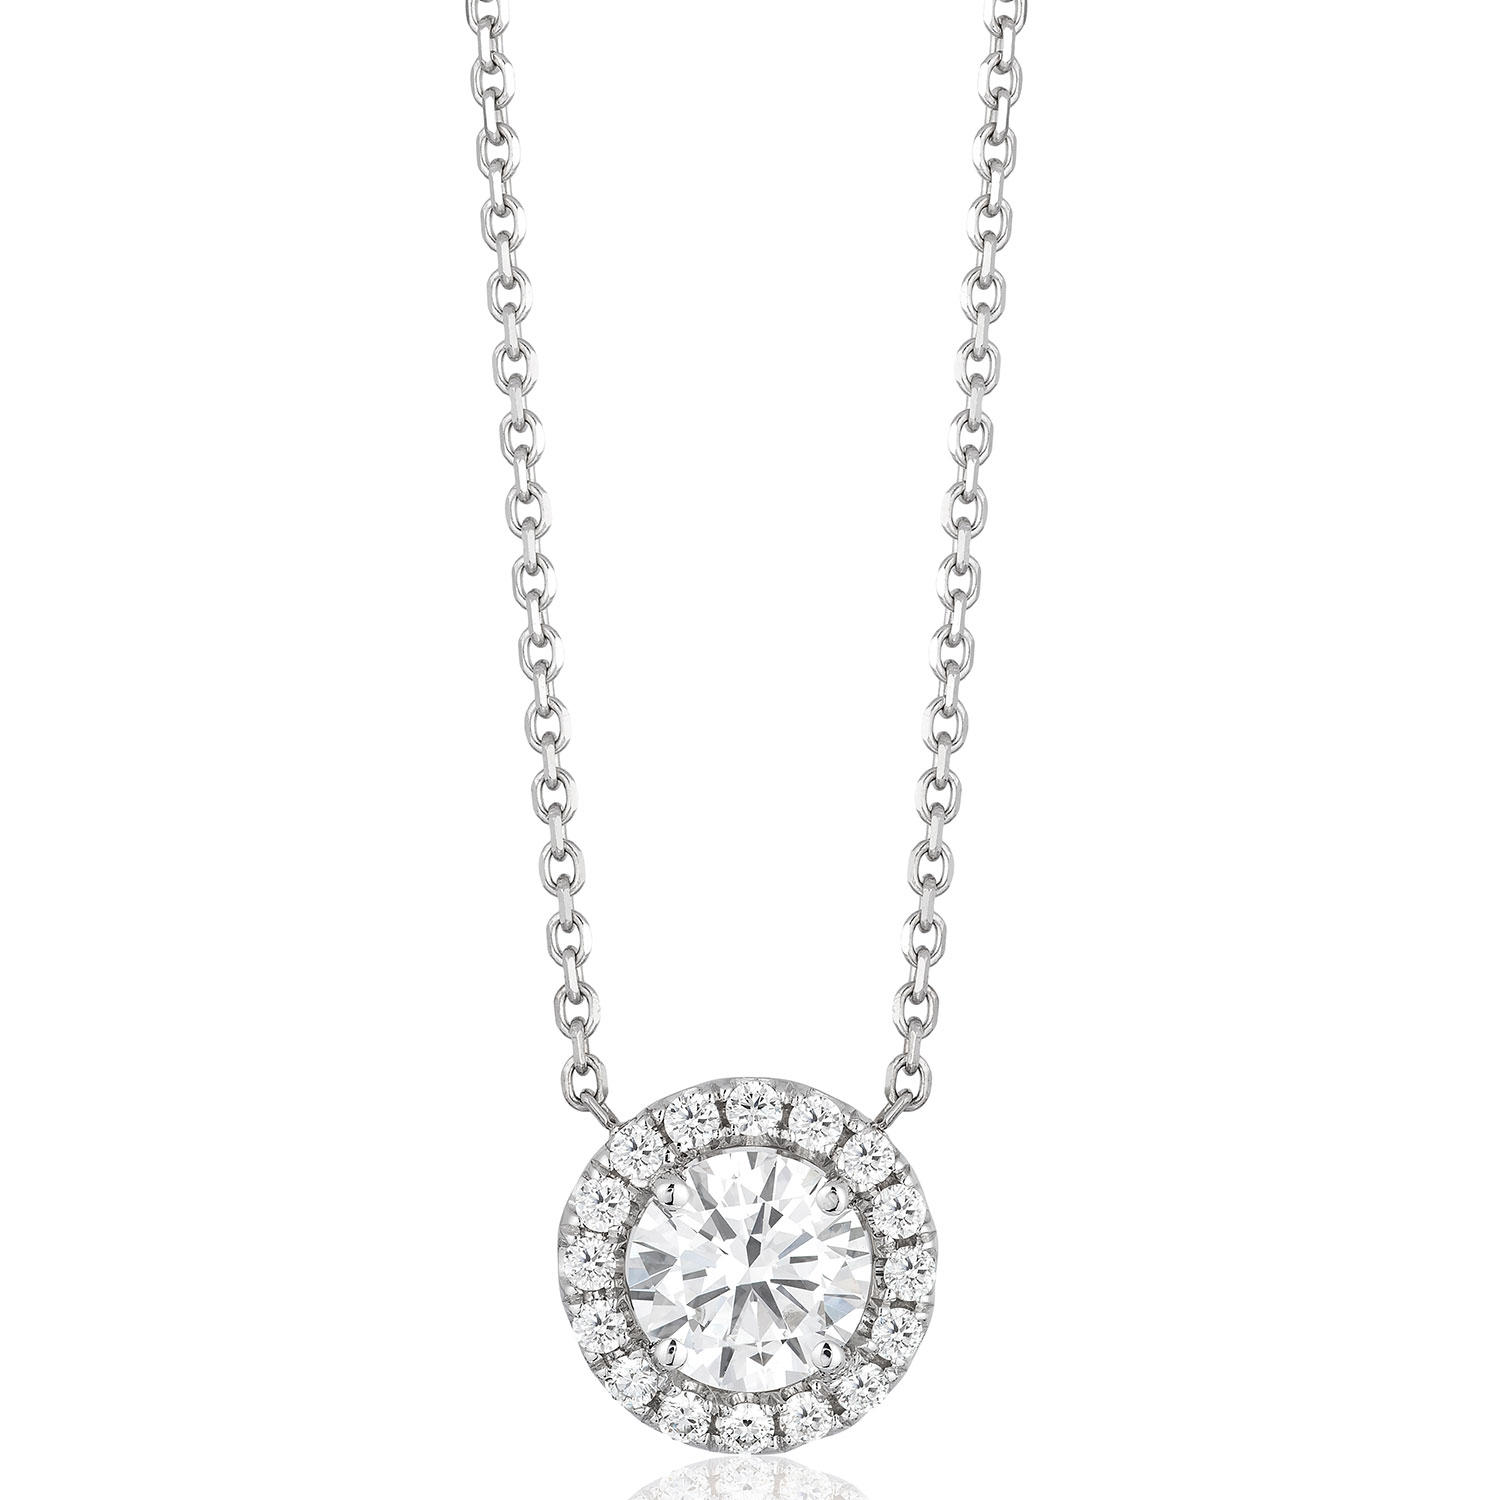 Superior Quality Collection 0.60 CT. T.W. Round Diamond Pendant in 18K White Gold (I, VS2) (NK8W0357/050 SC)